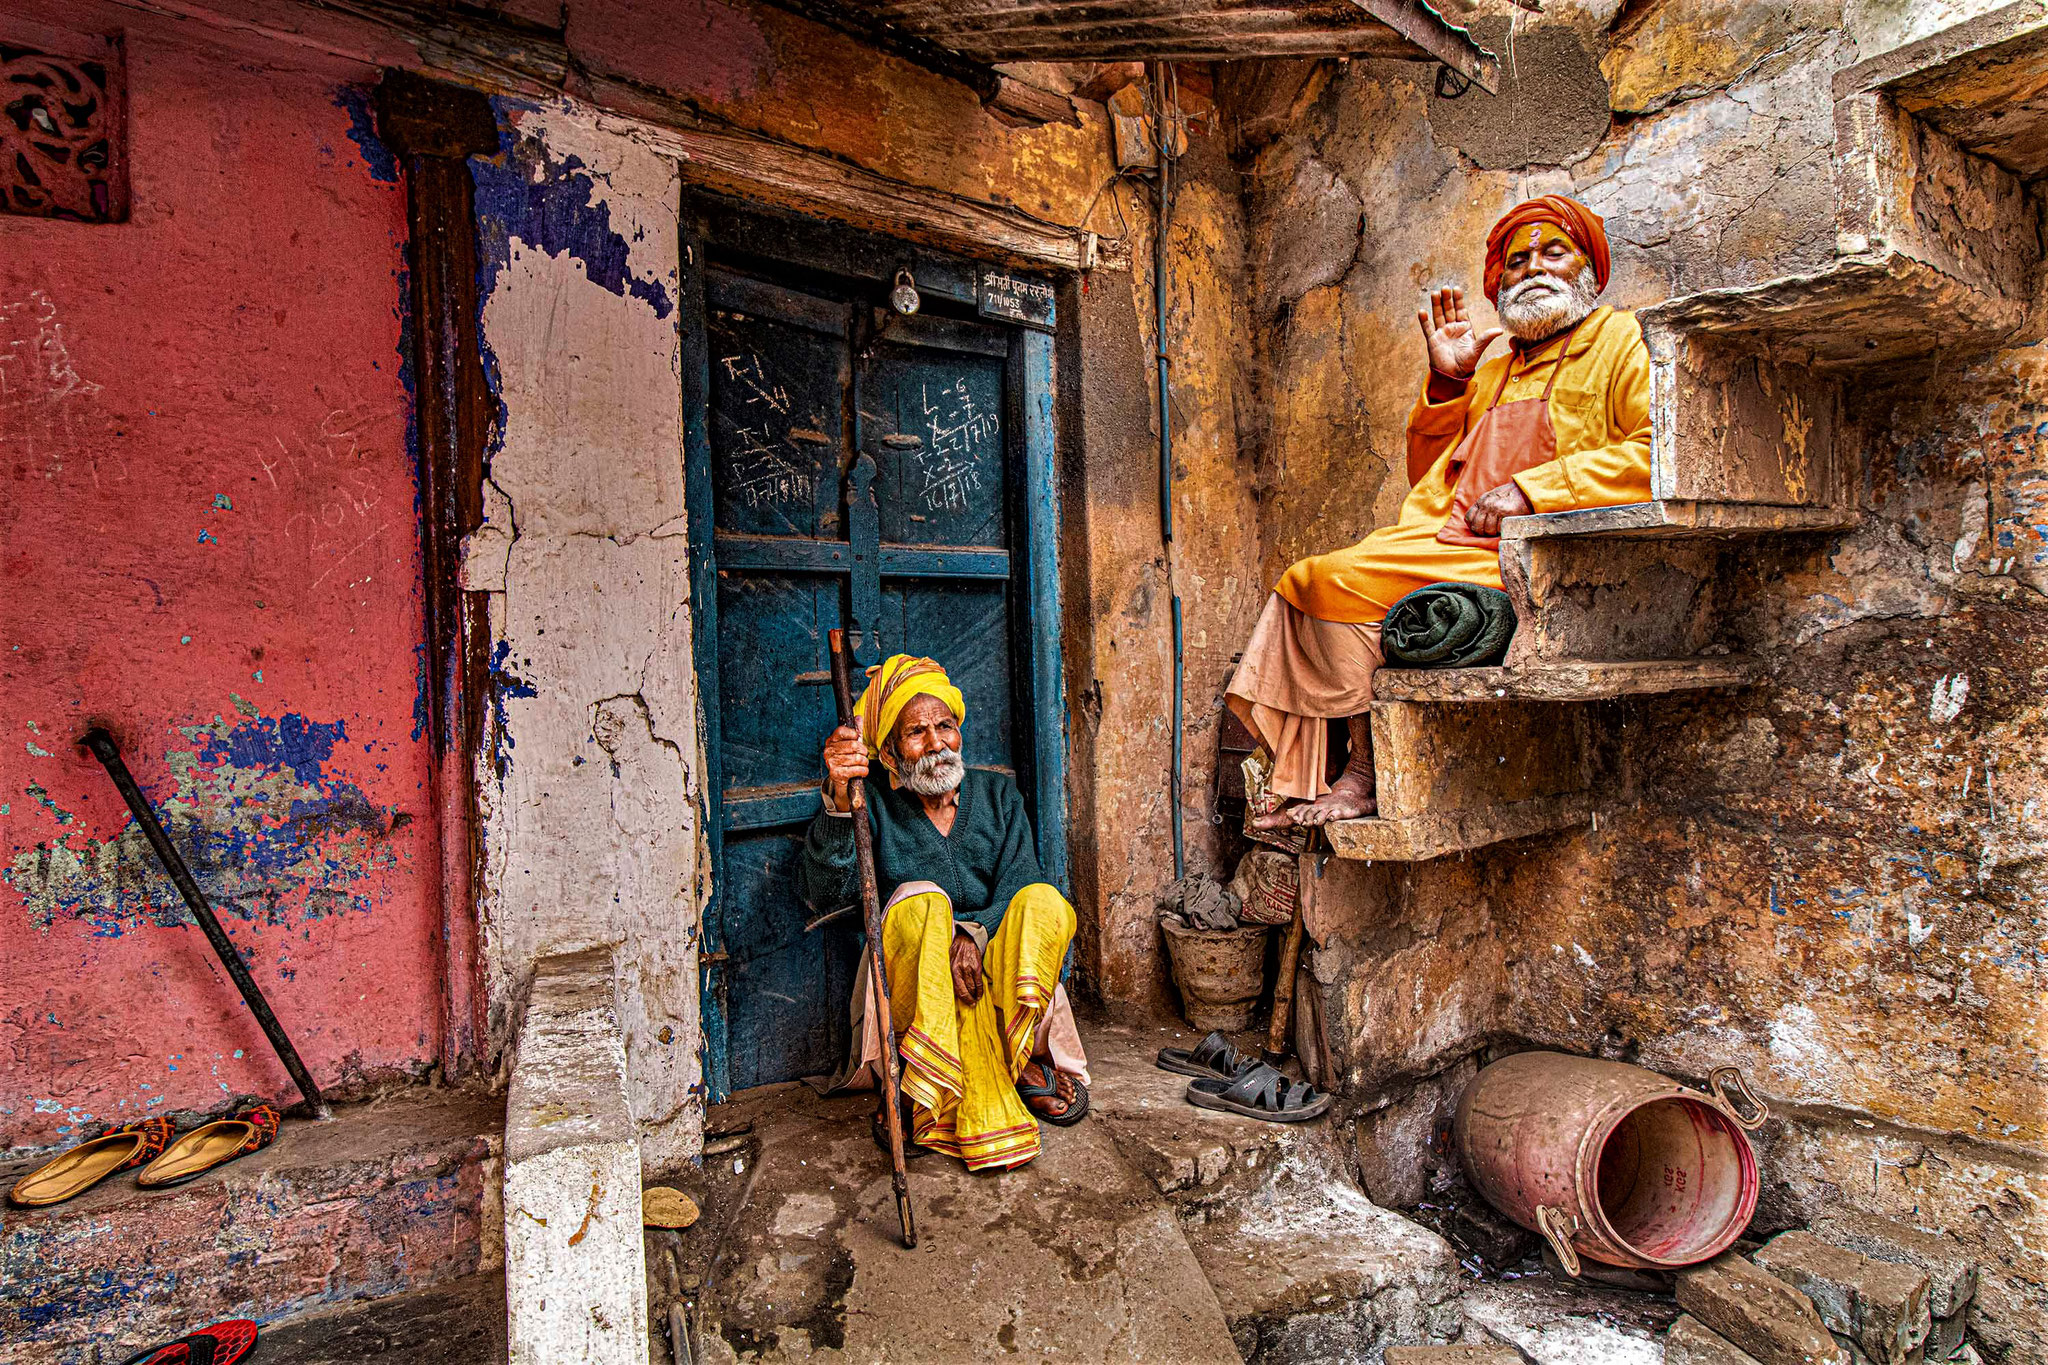 Subhra  Roychowdhury EFIAP (India)  - Old and wise